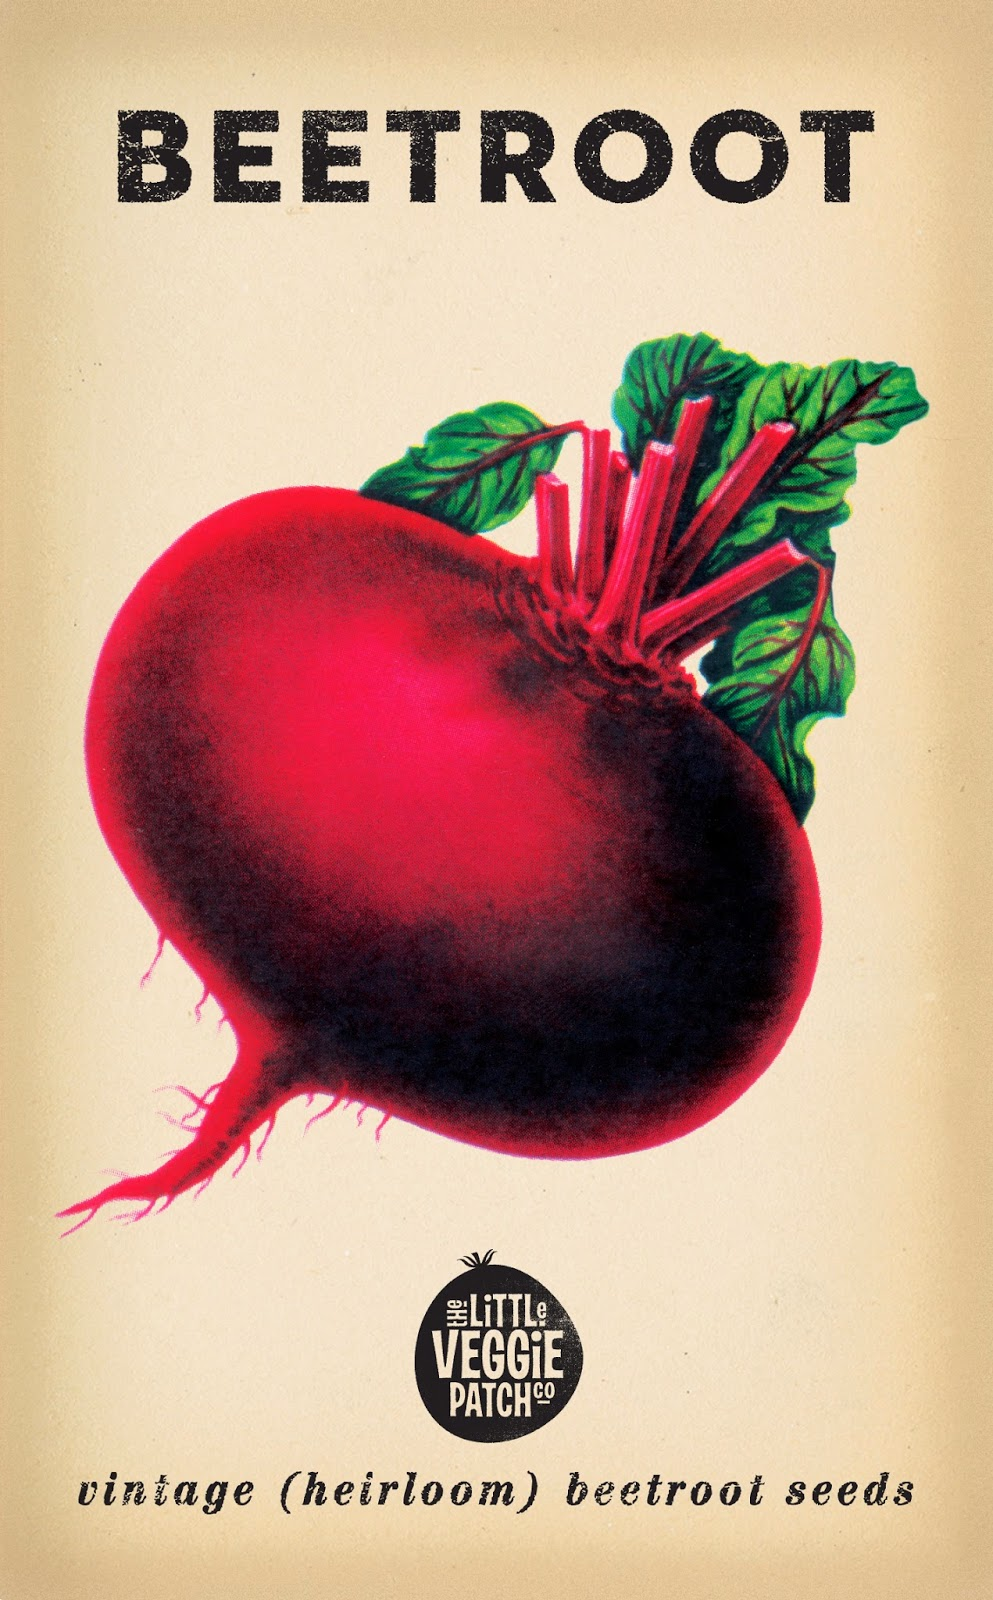 http://www.mrgift.com.au/the-little-veggie-patch-co/detroit-beetroot-seeds